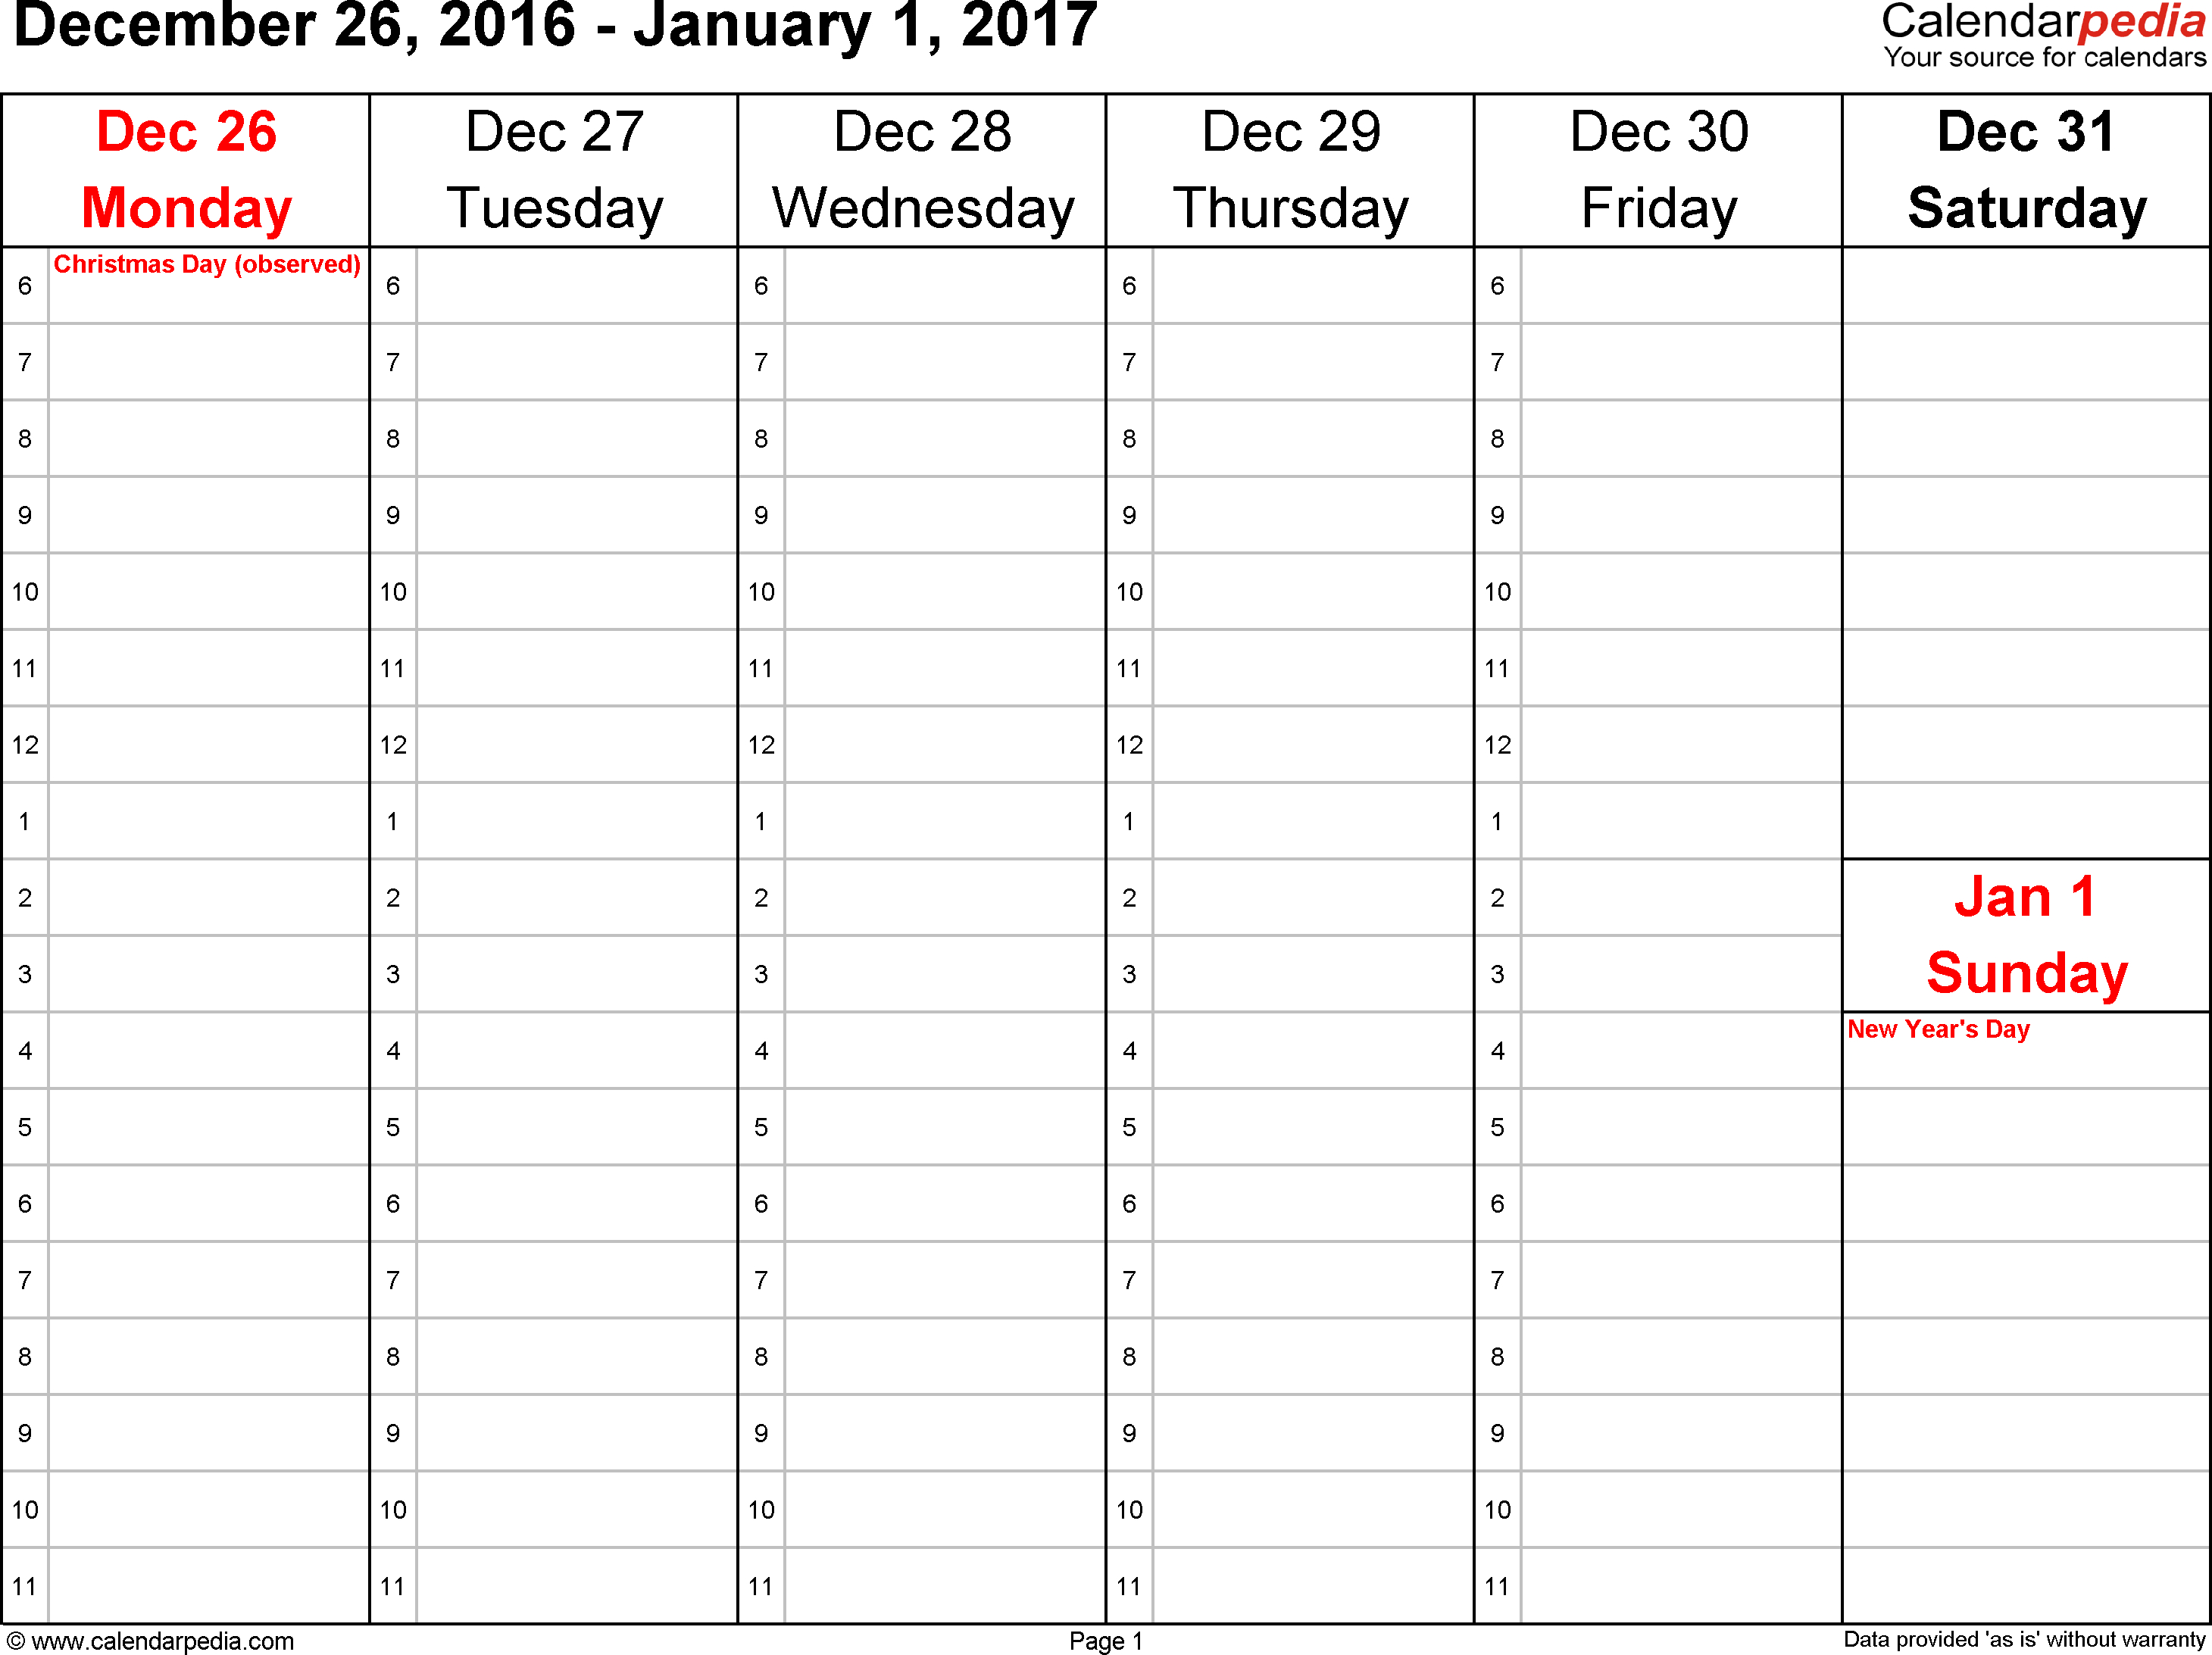 Weekly Calendar 2017 For Excel - 12 Free Printable Templates with Blank December Weekly Calander